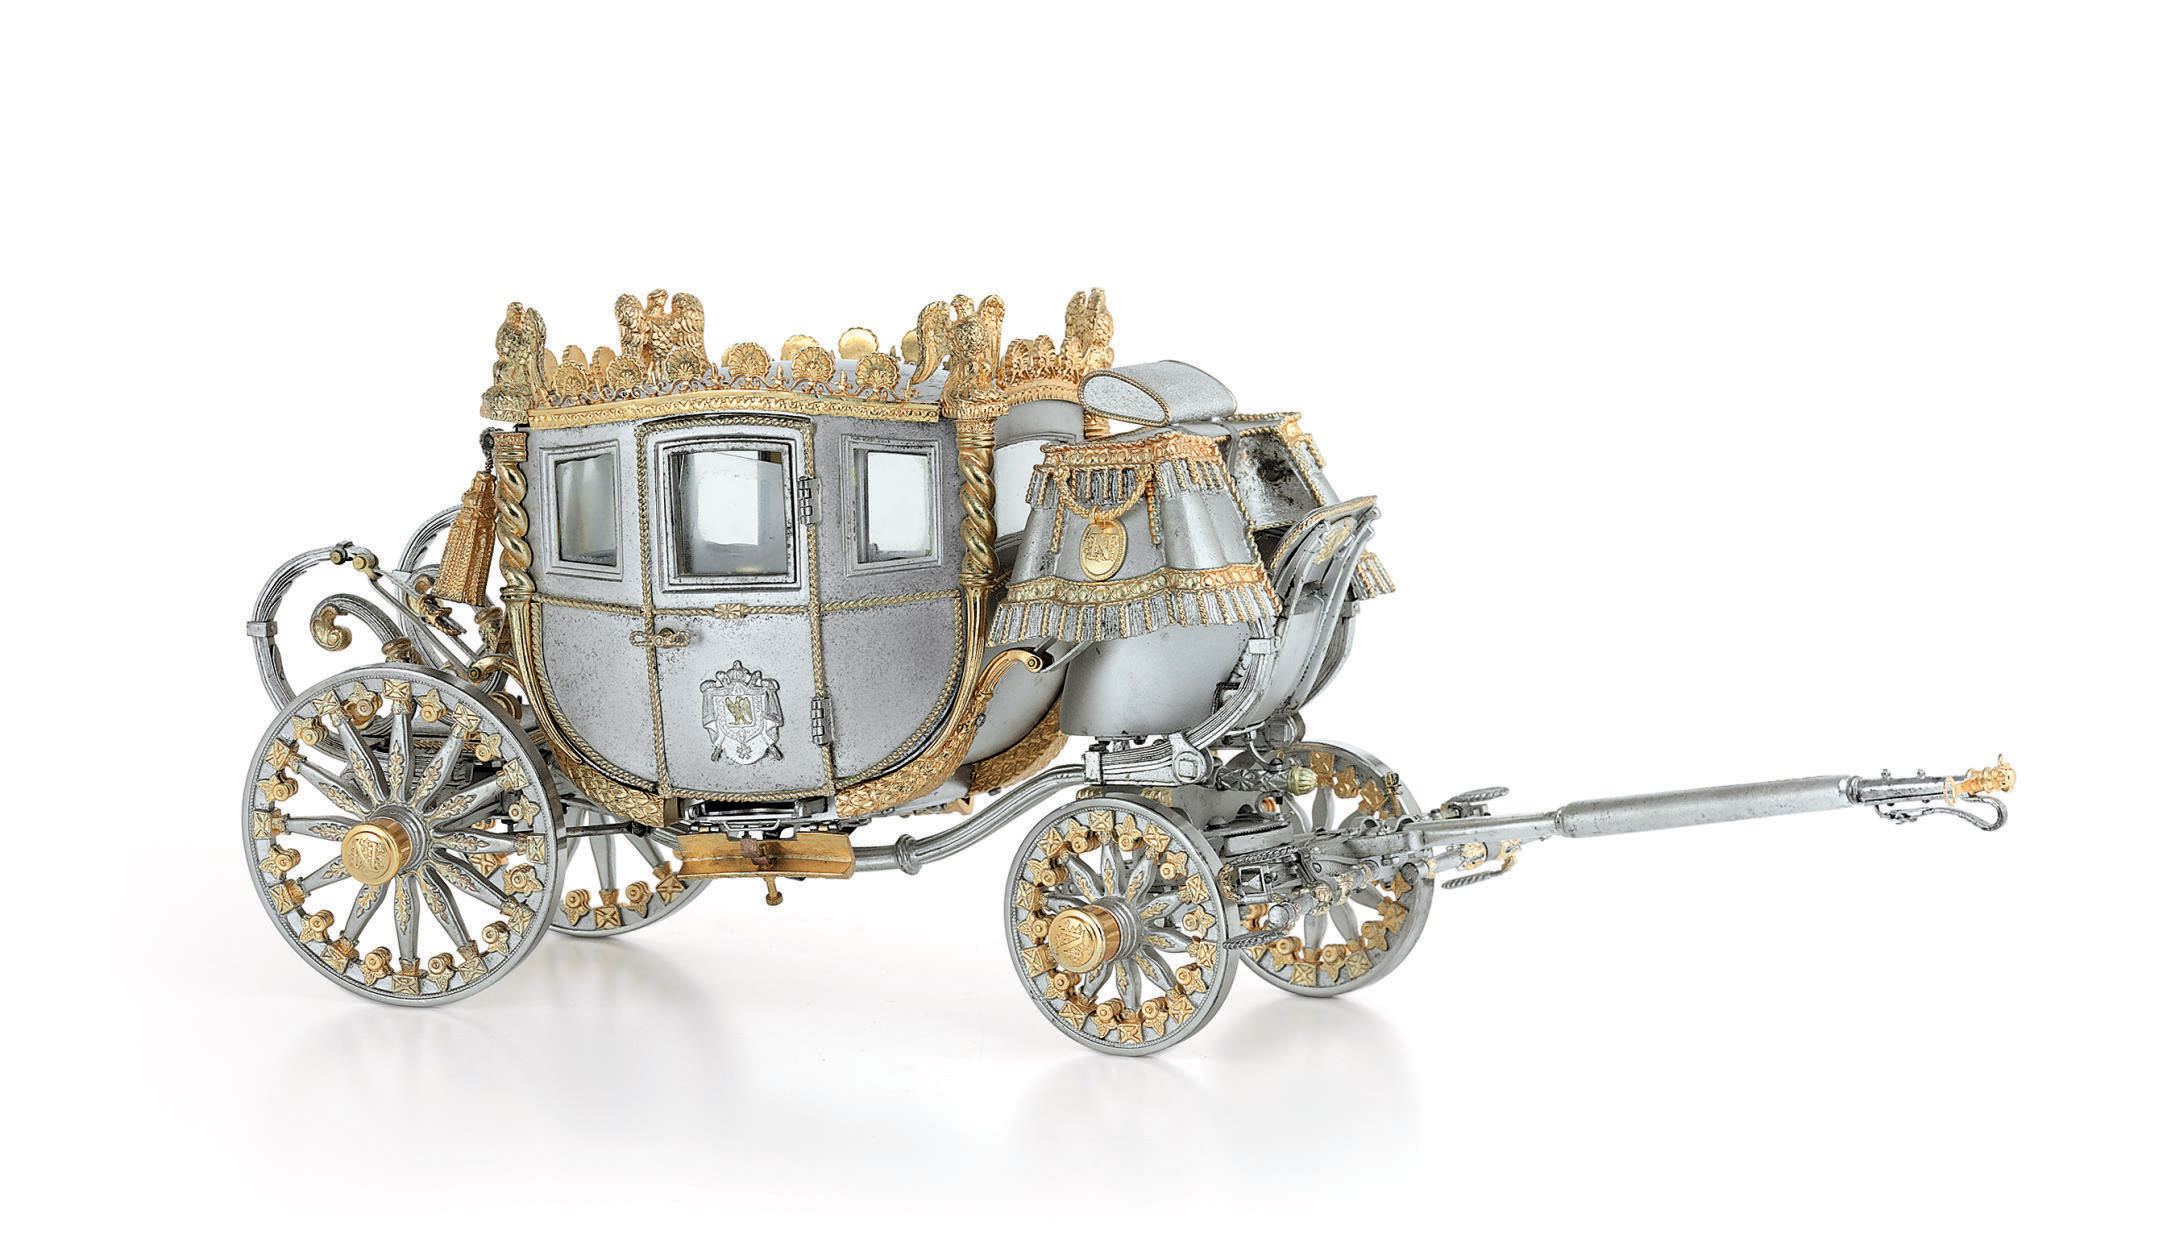 AN AMERICAN PARCEL-GILT SILVER MODEL OF A CORONATION COACH